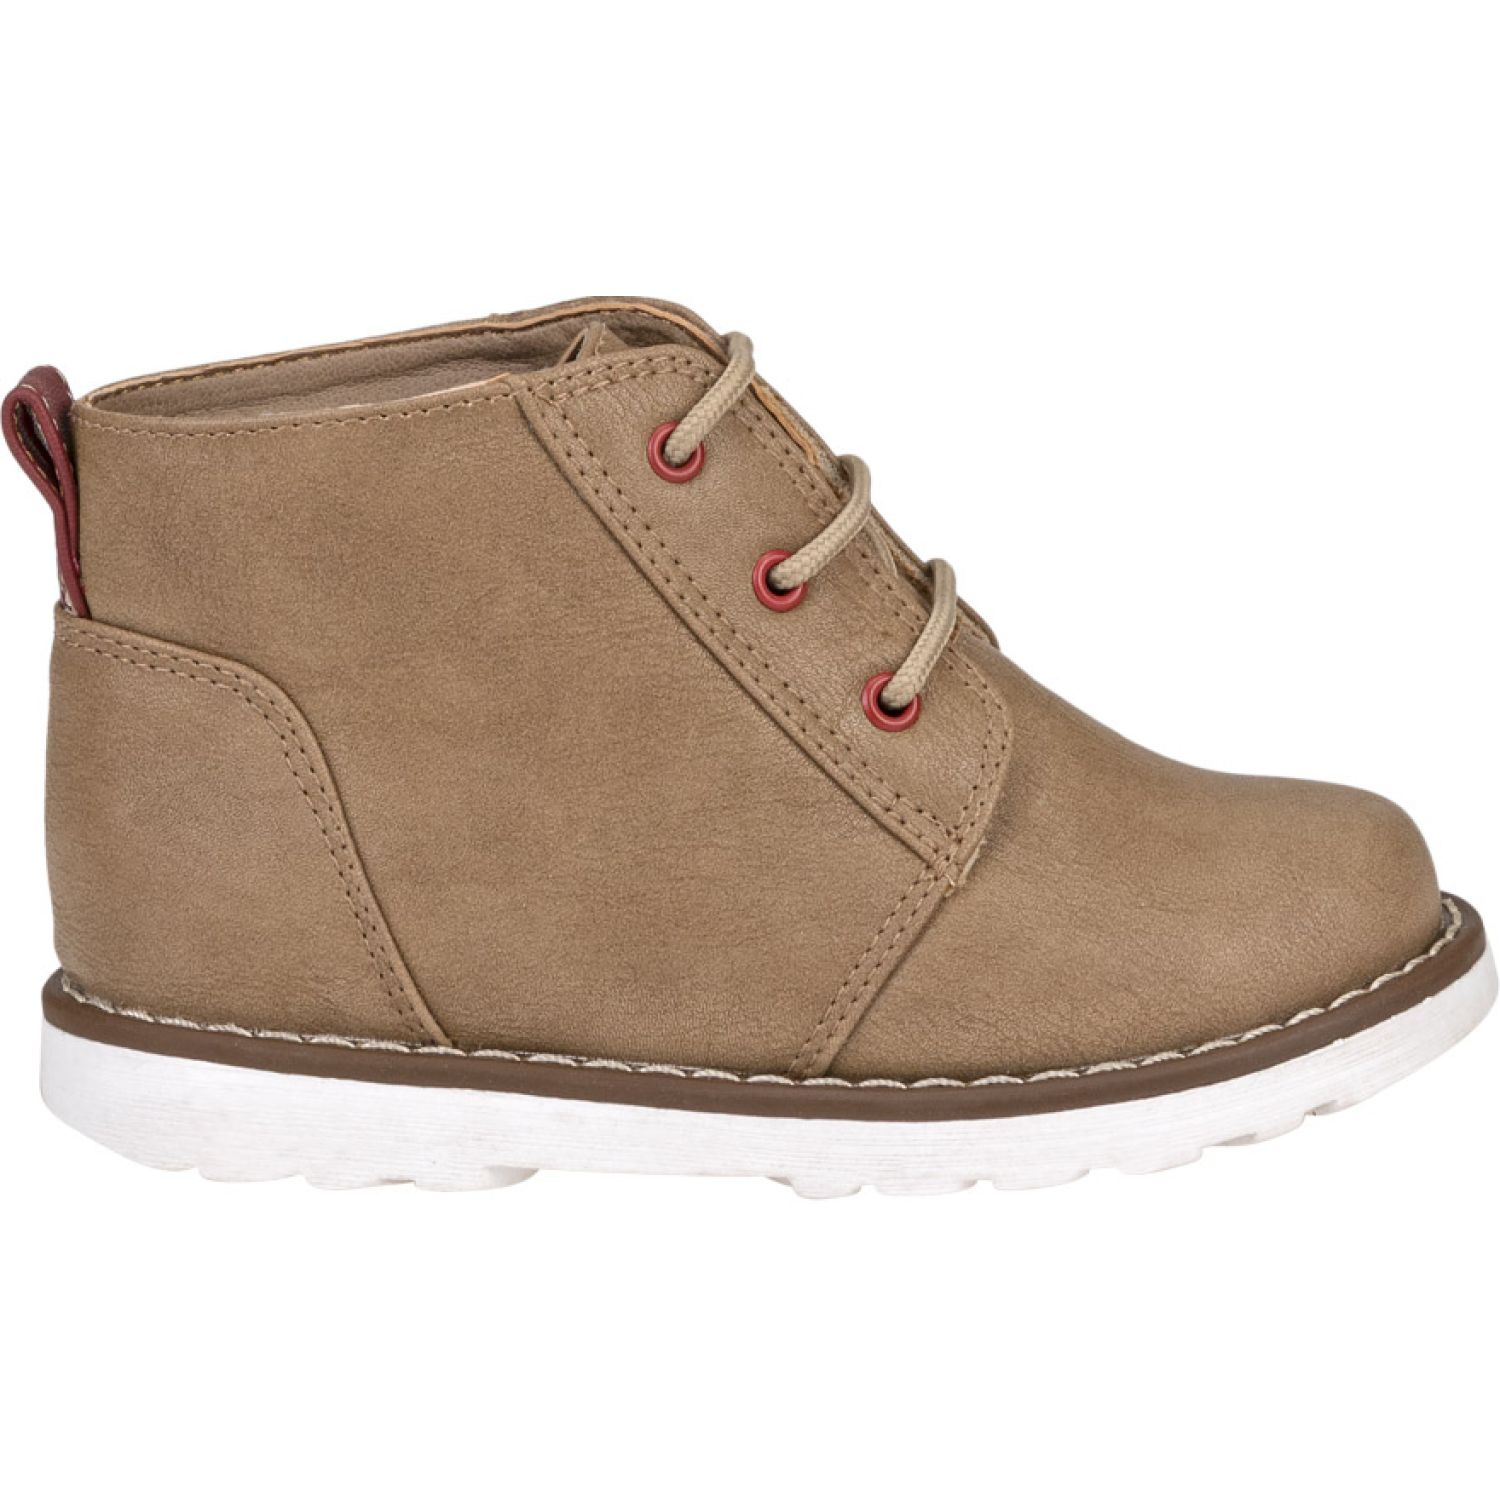 FOOTLOOSE FN-22I20 NUTRIA Botas